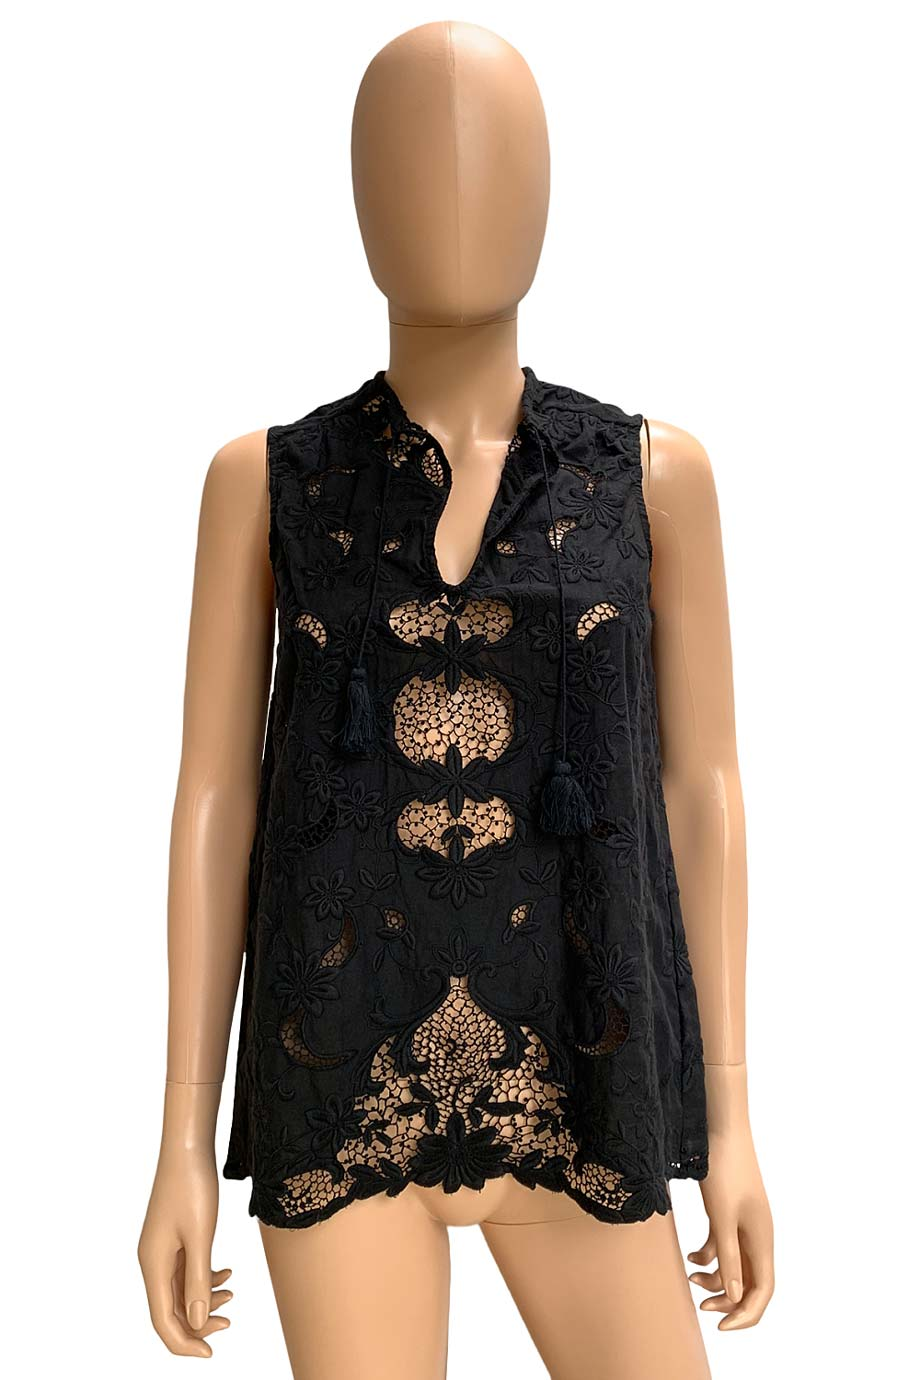 Sea NY Black Floral Lace Embroidered Sleeveless Top / Sz 2